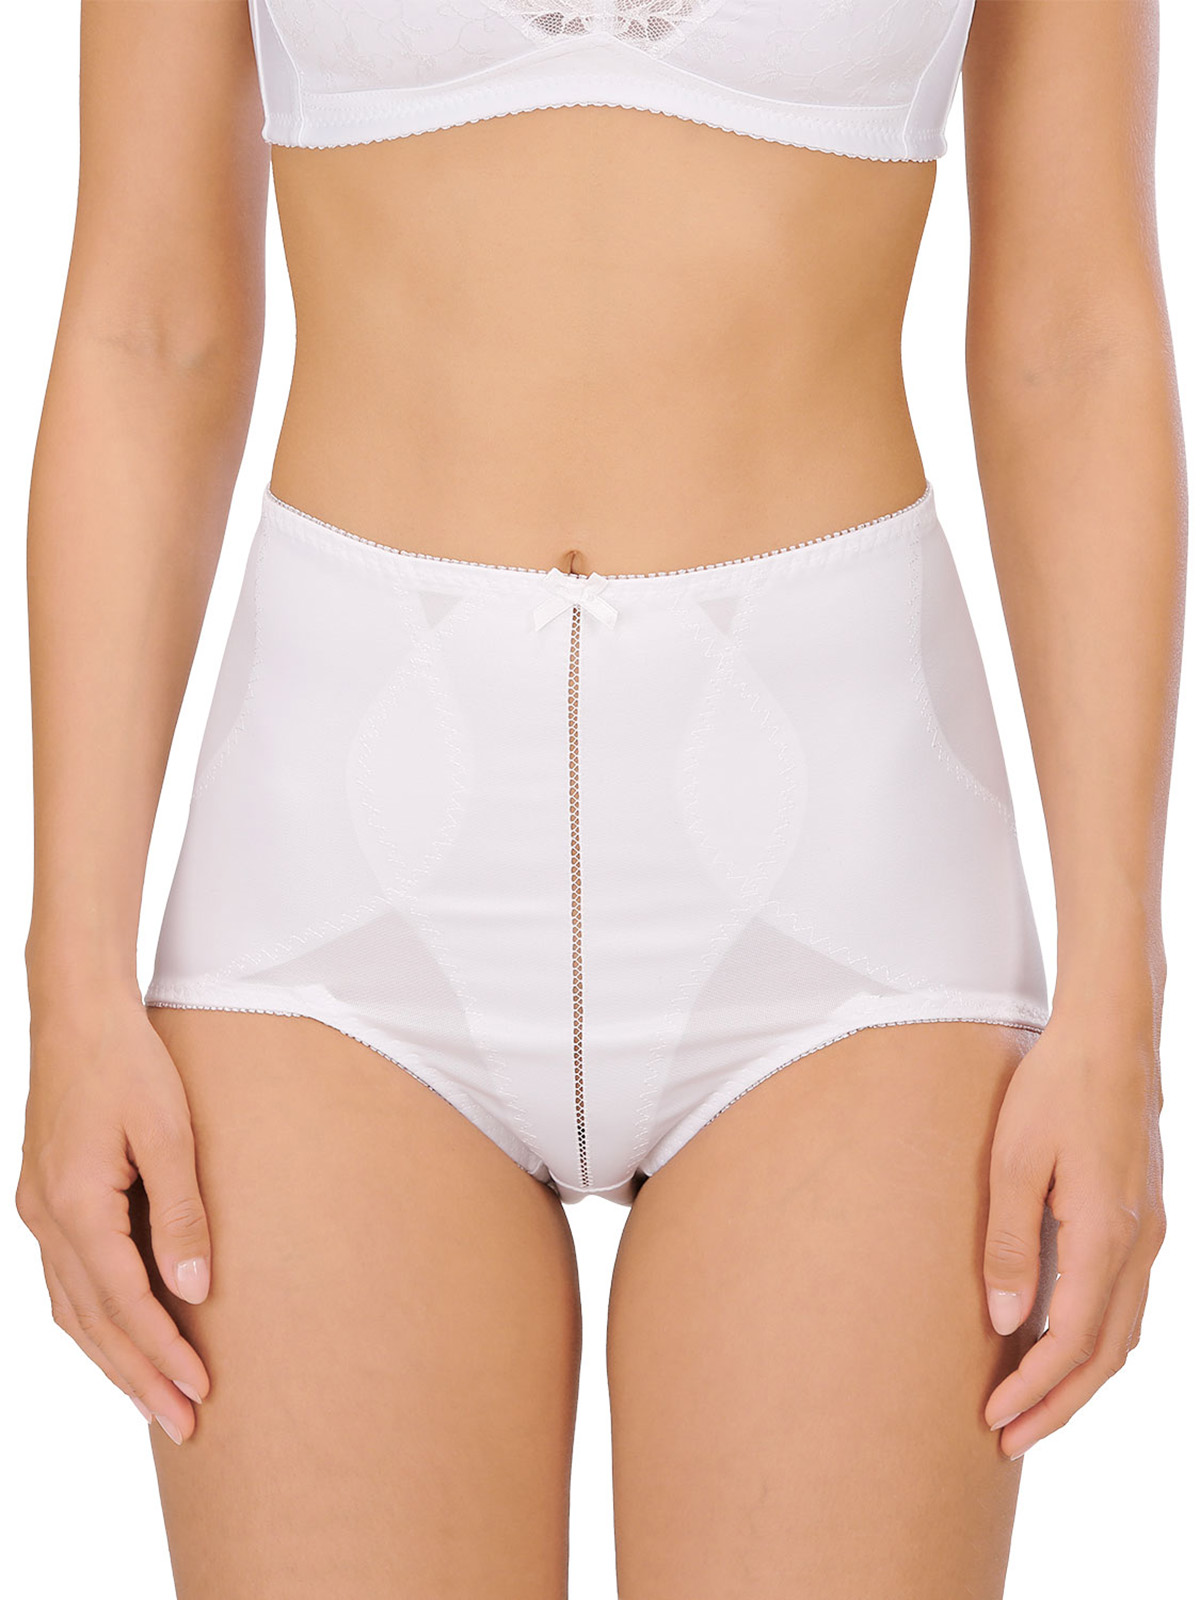 Naturana Pack of 2 Women's Panty Girdle 0319, L-7XL